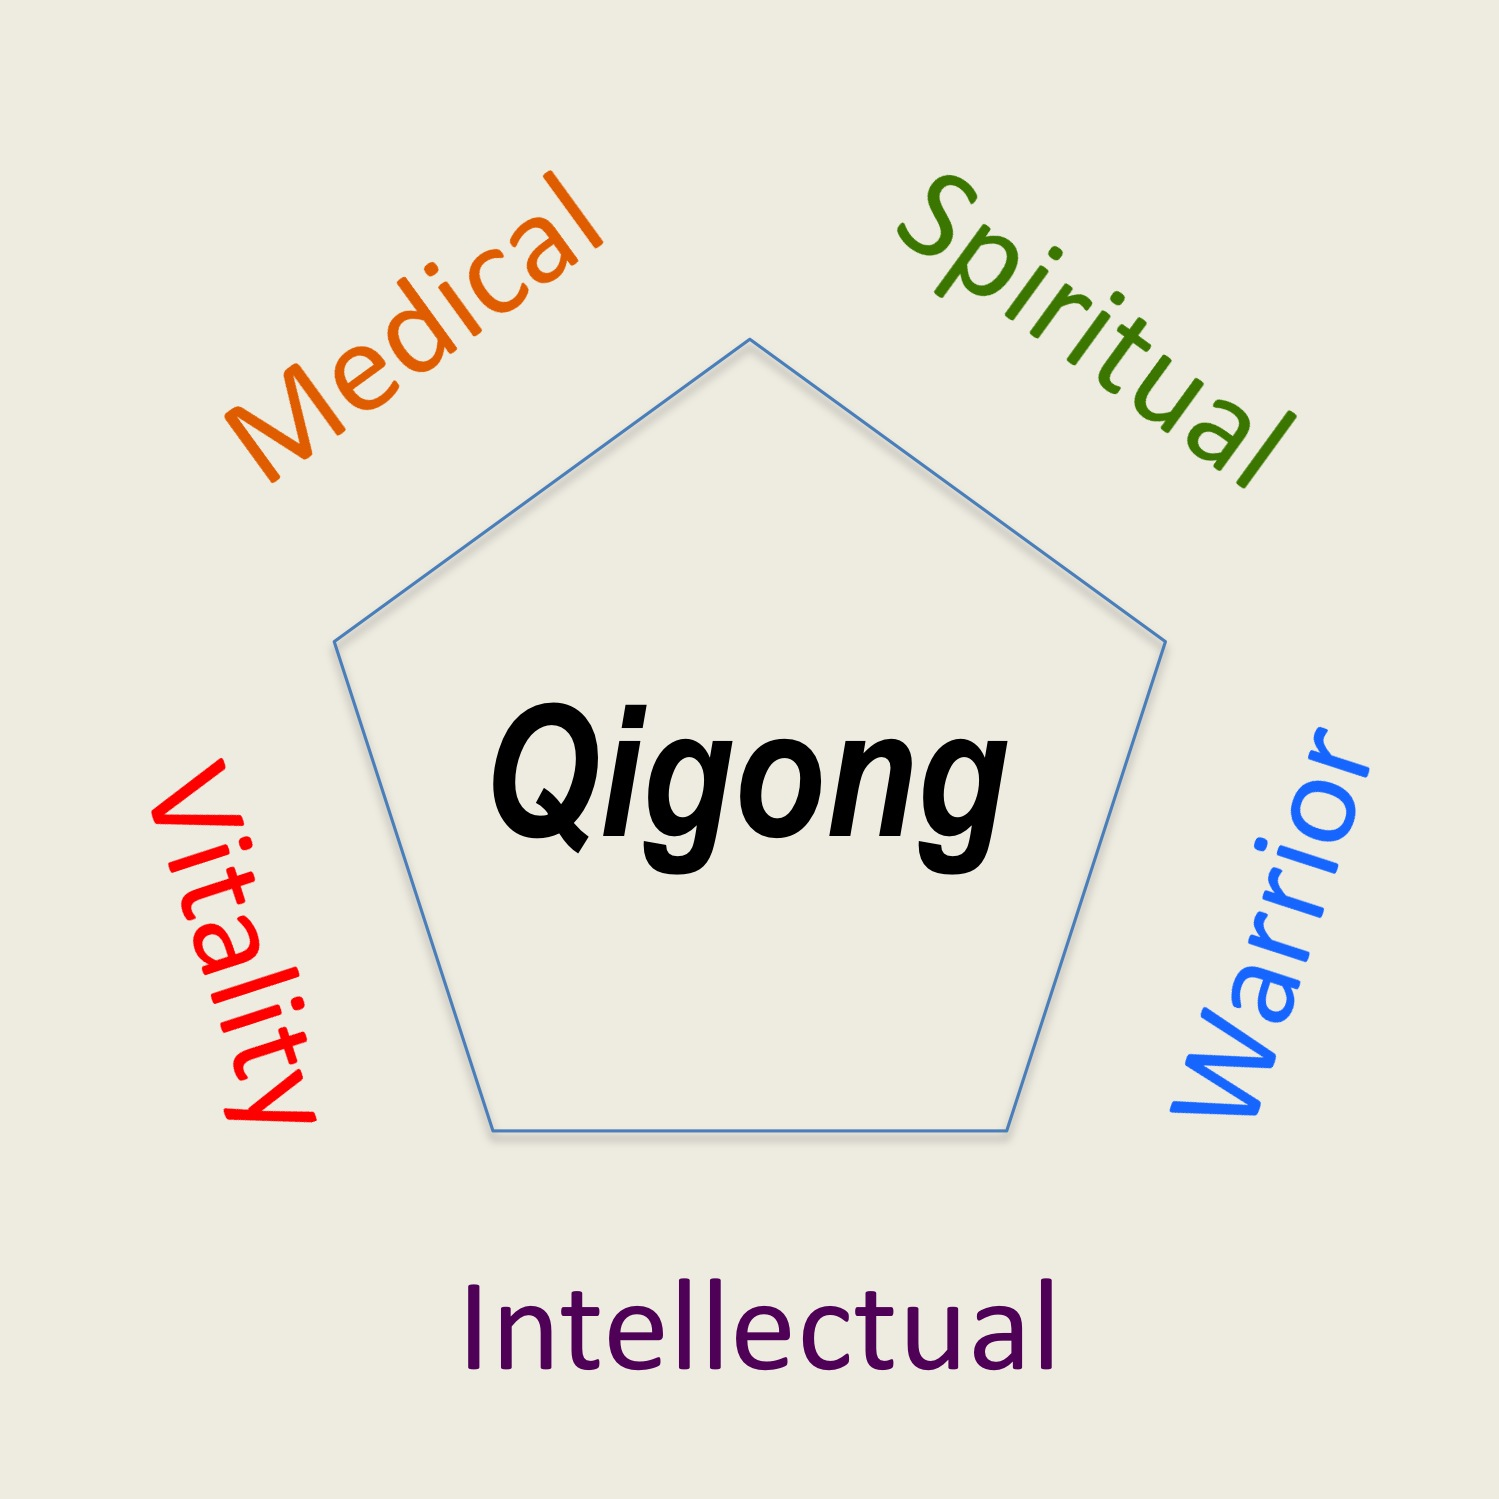 We all know that Qigong is great for healing. But is there anything ...